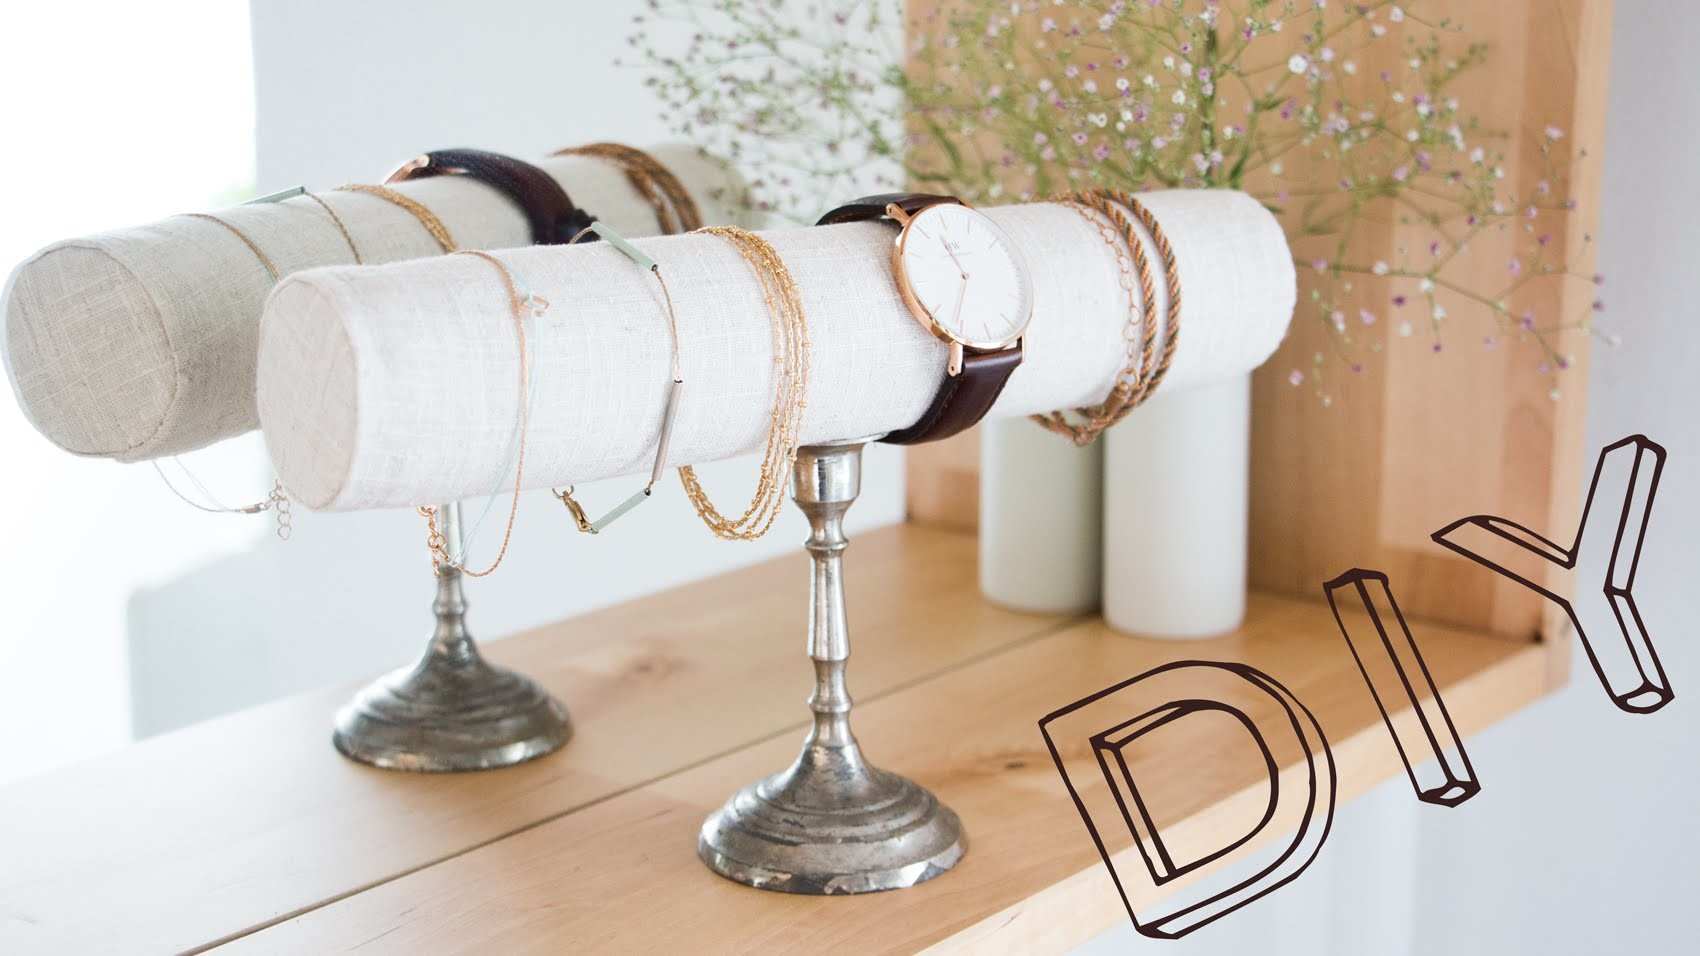 DIY Armband- & Uhrendisplay - Upcycling